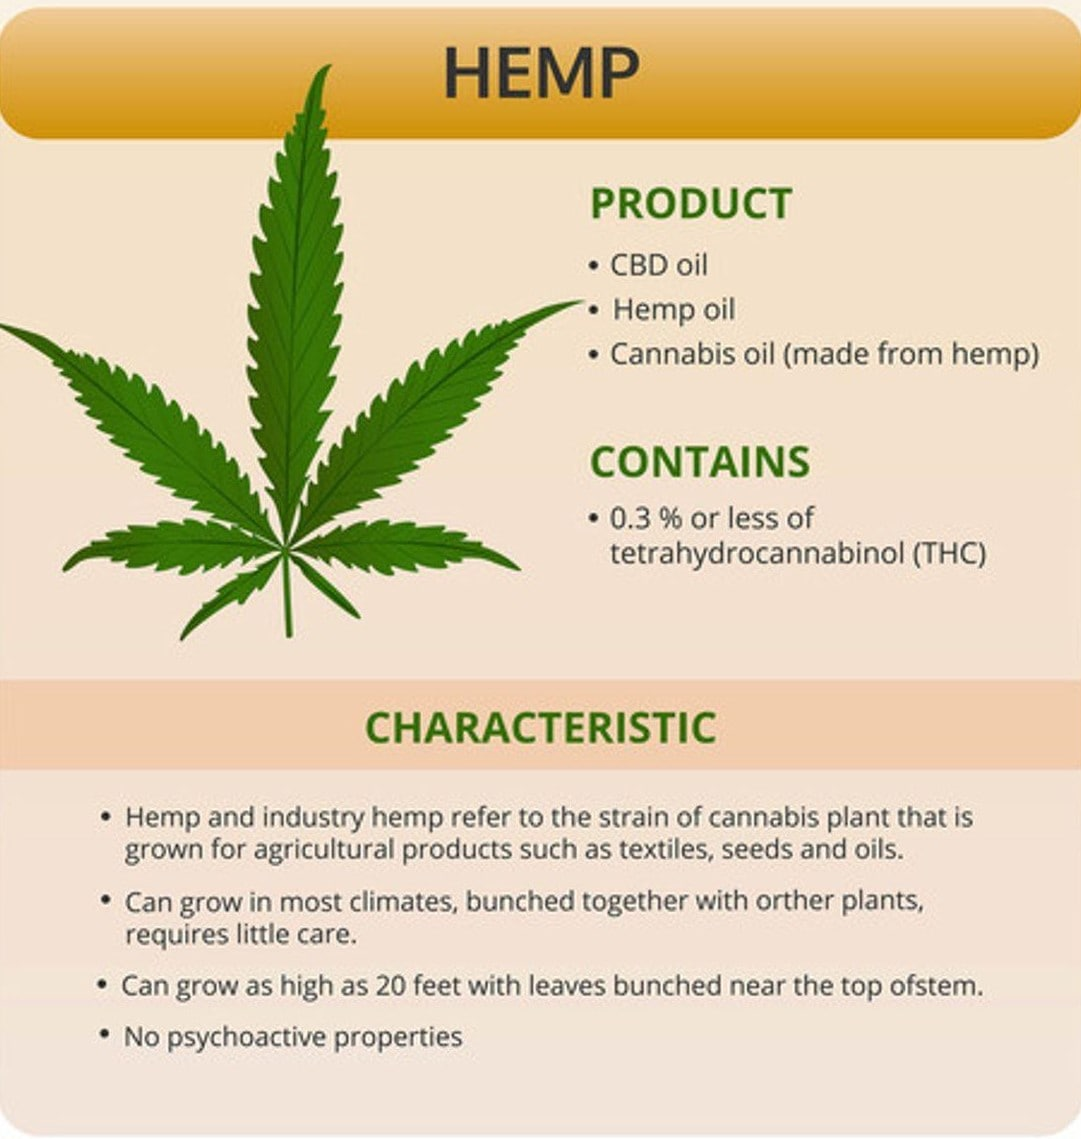 Information on Hemp